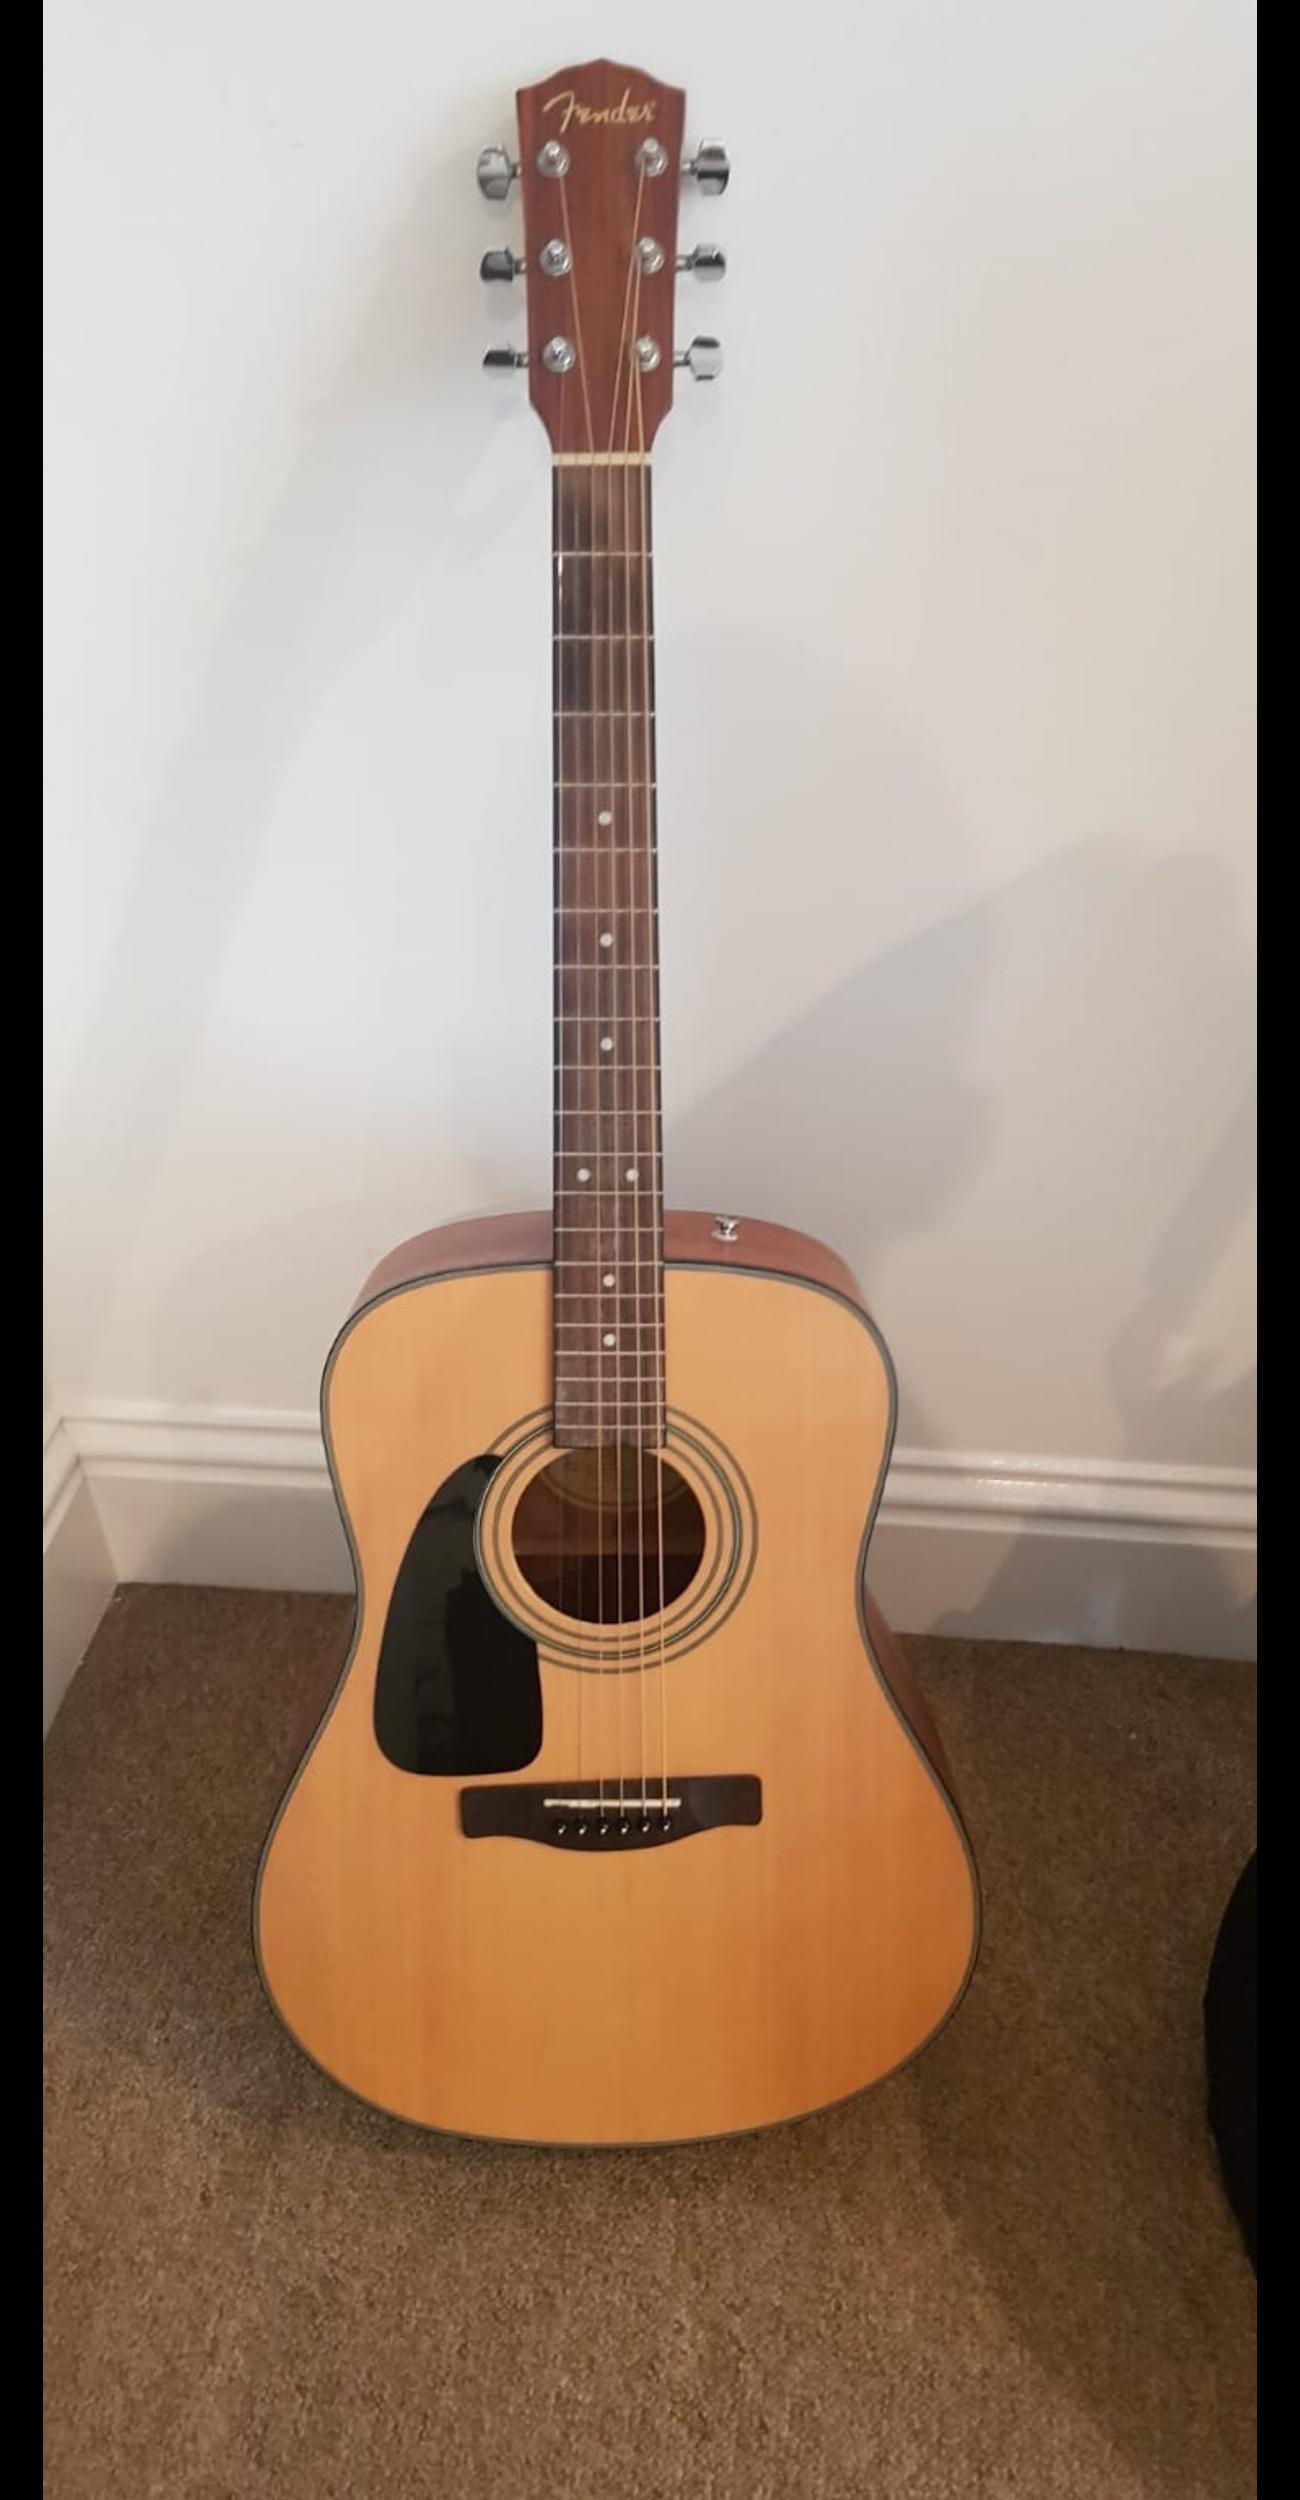 Fender Left Handed Acoustic Guitar